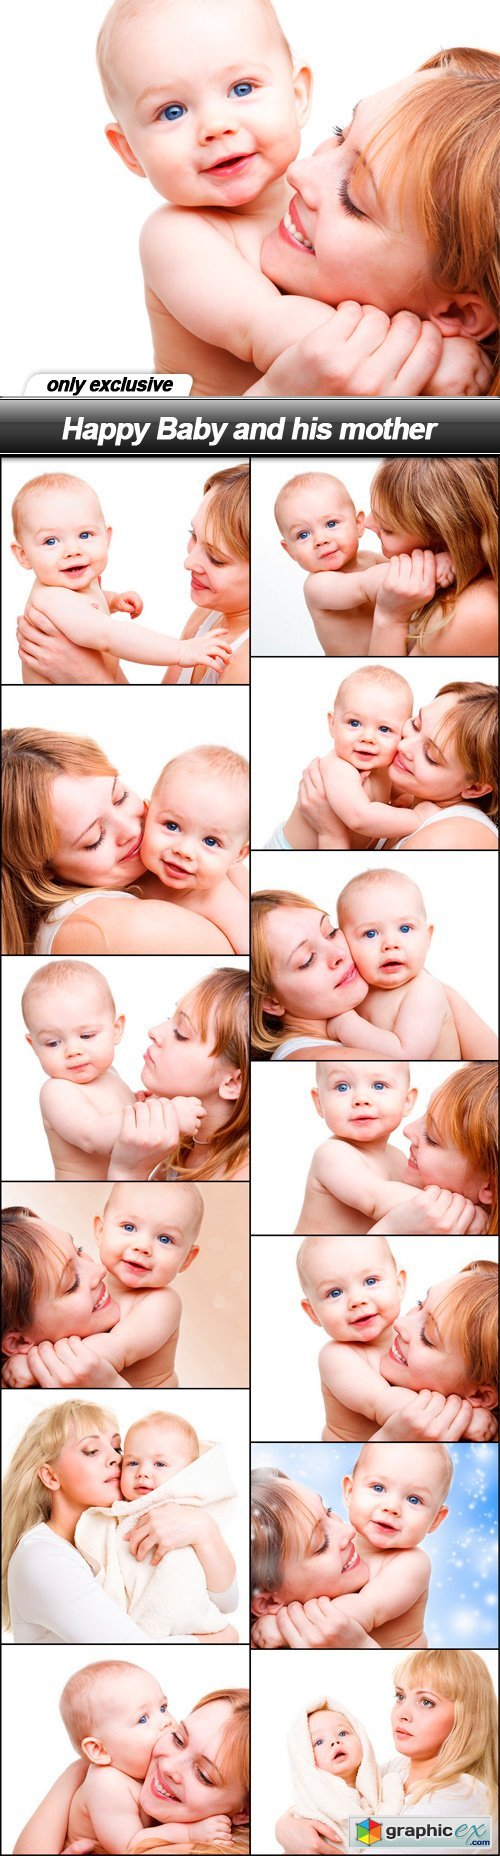 Happy Baby and his mother - 13 UHQ JPEG